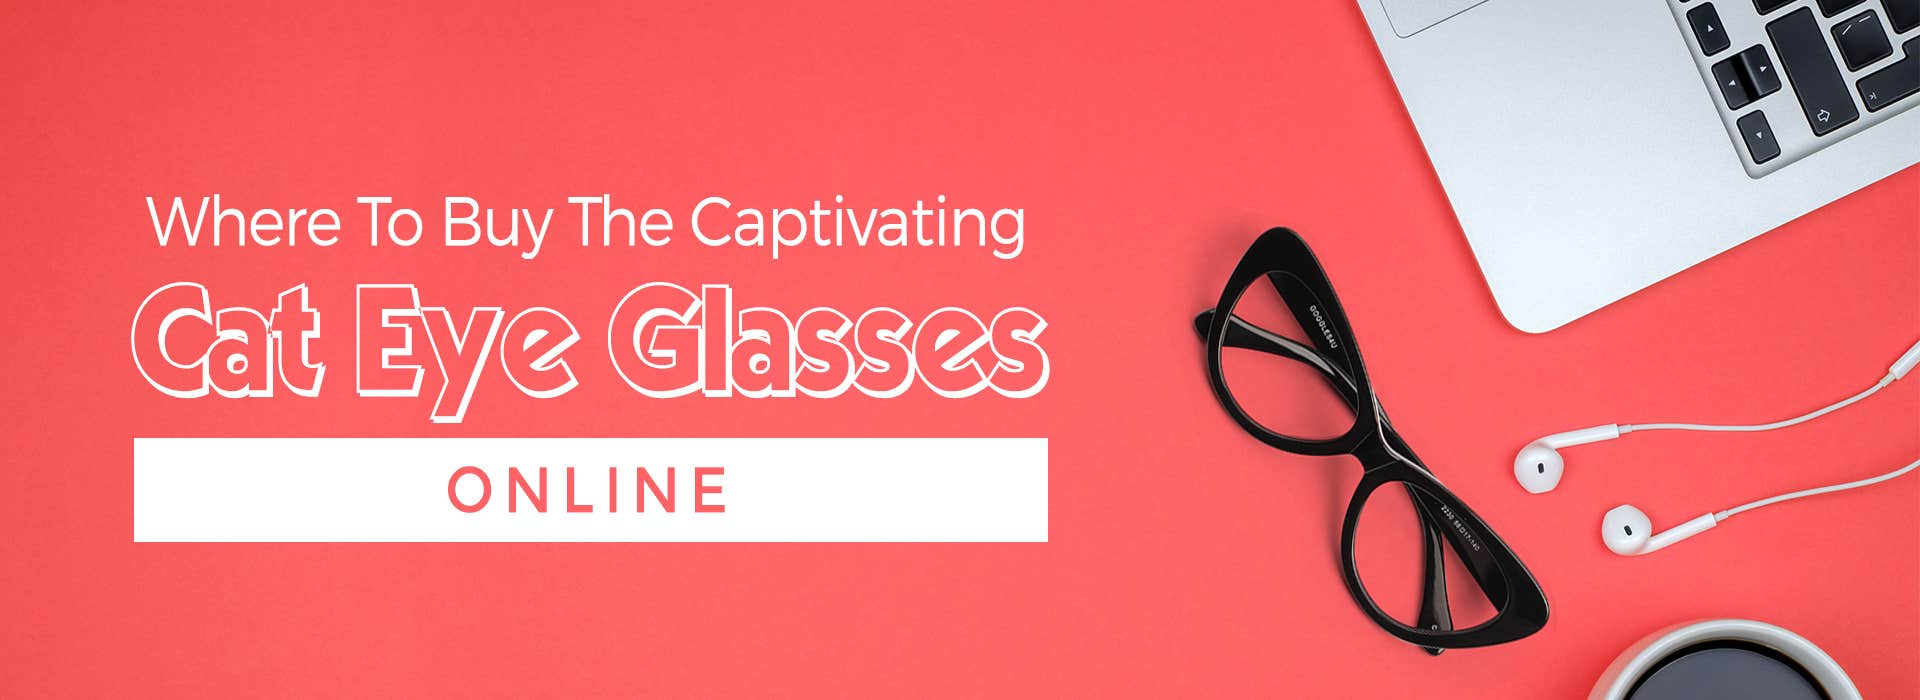 Where To Buy The Captivating Cat Eye Glasses Online?